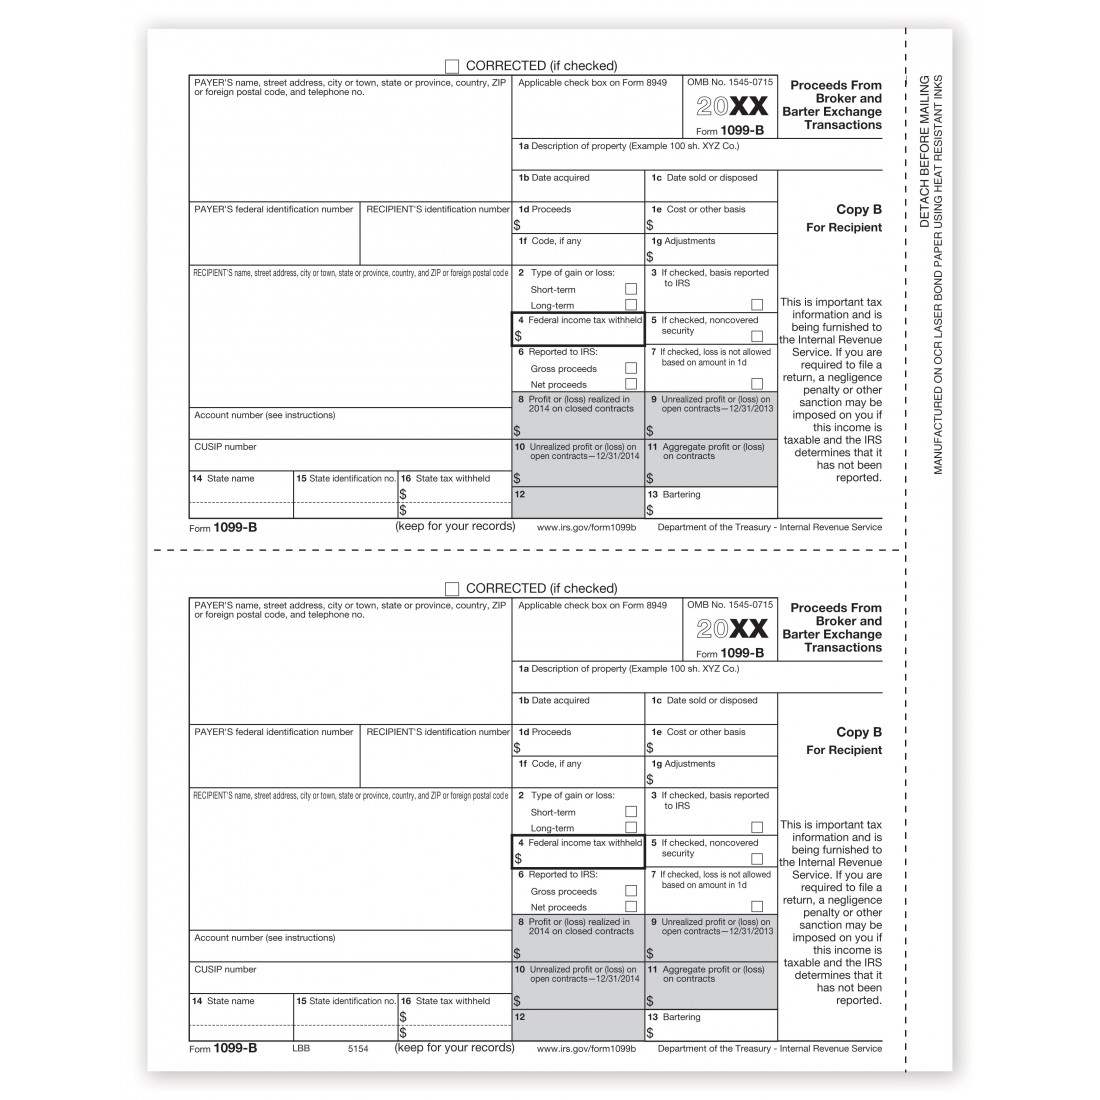 Tax Form 1099 B, Recipient Copy B